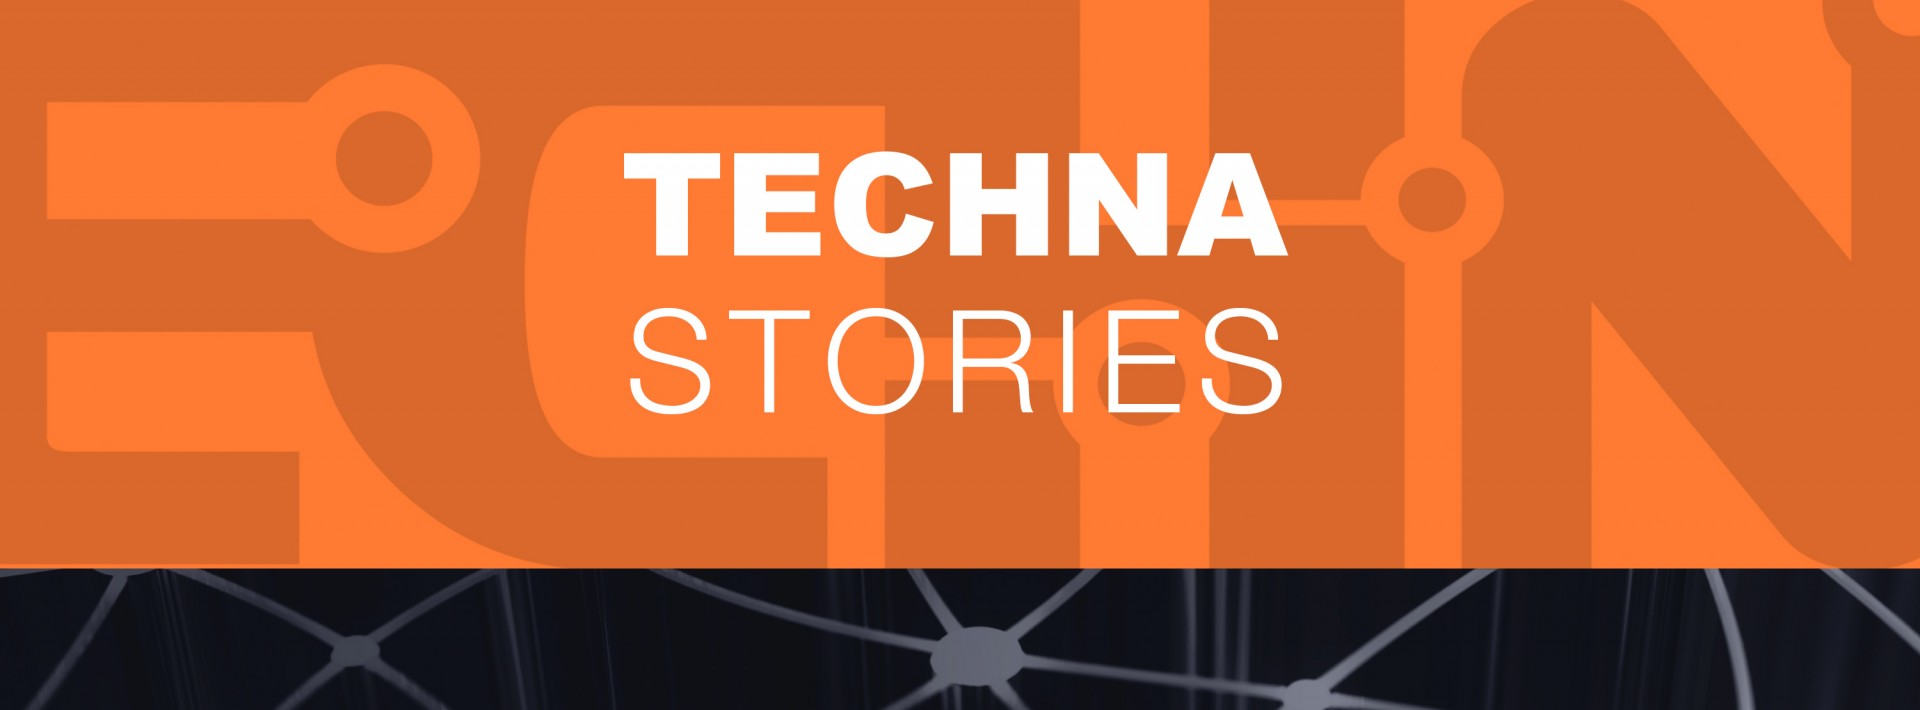 Techna stories text graphic button